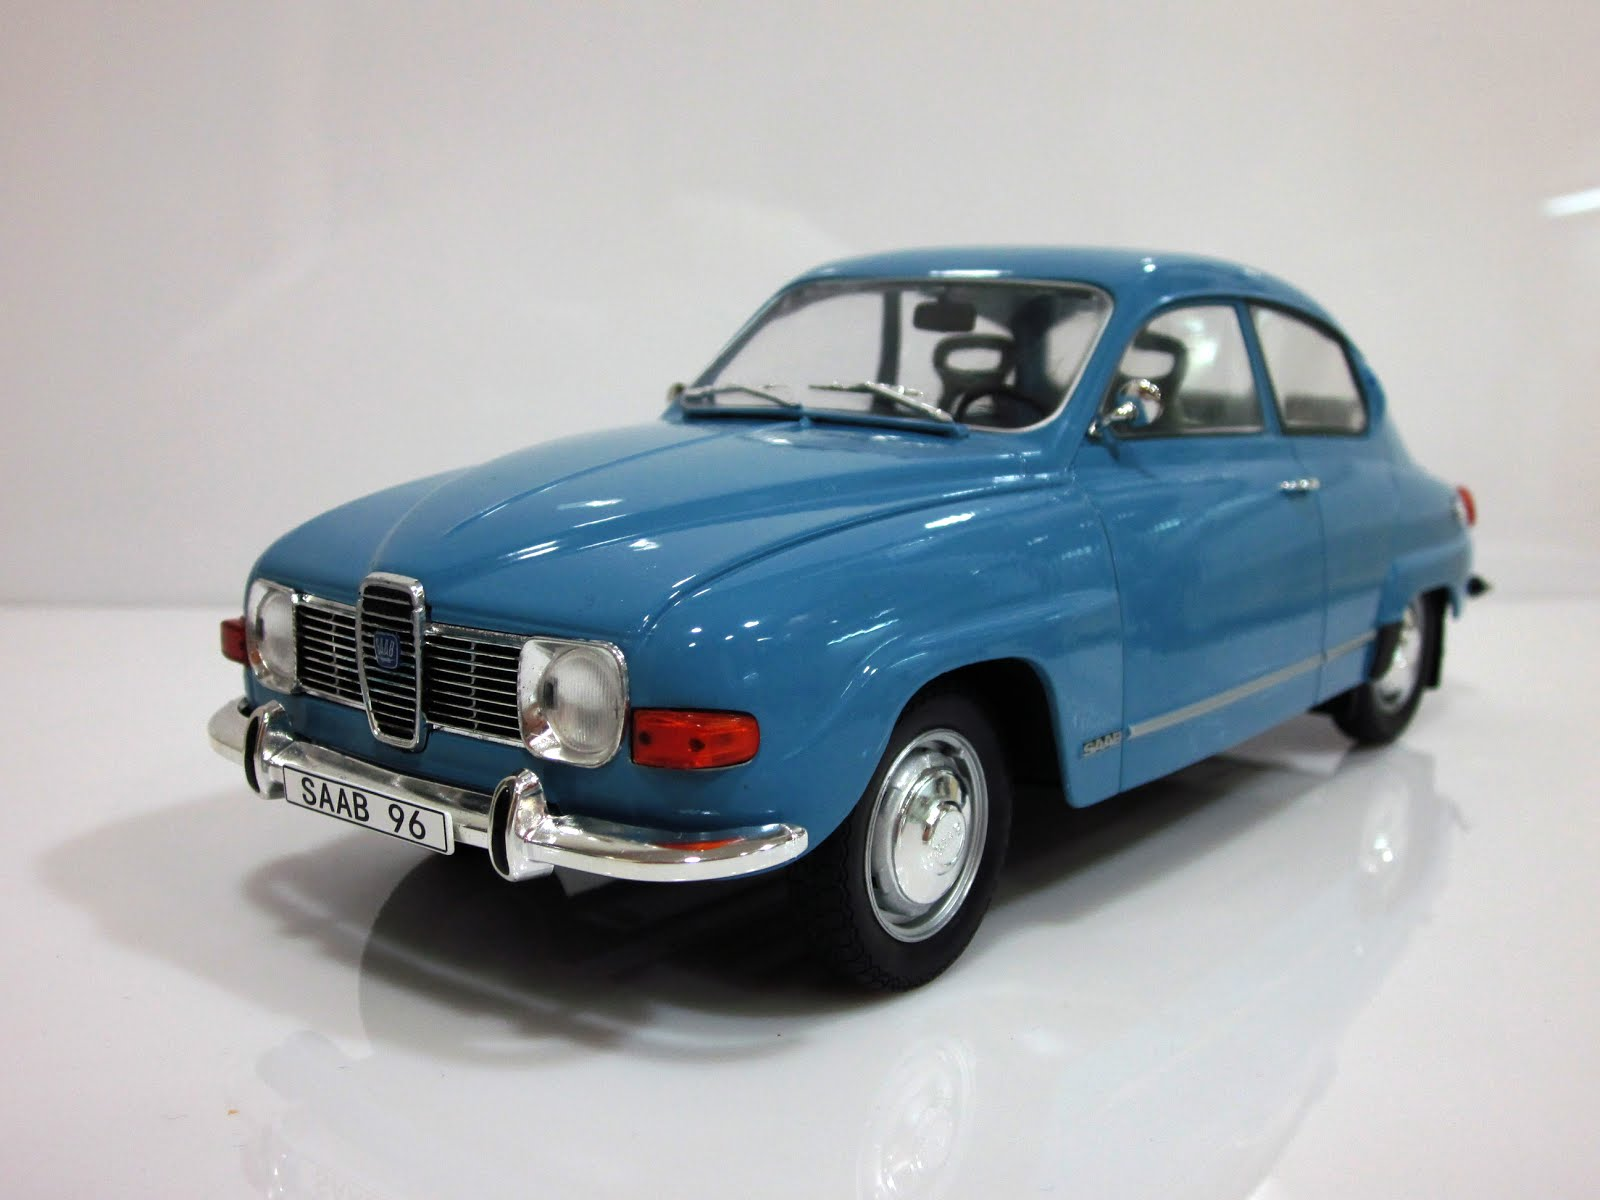 SAAB 96 V4 - Model Car Group